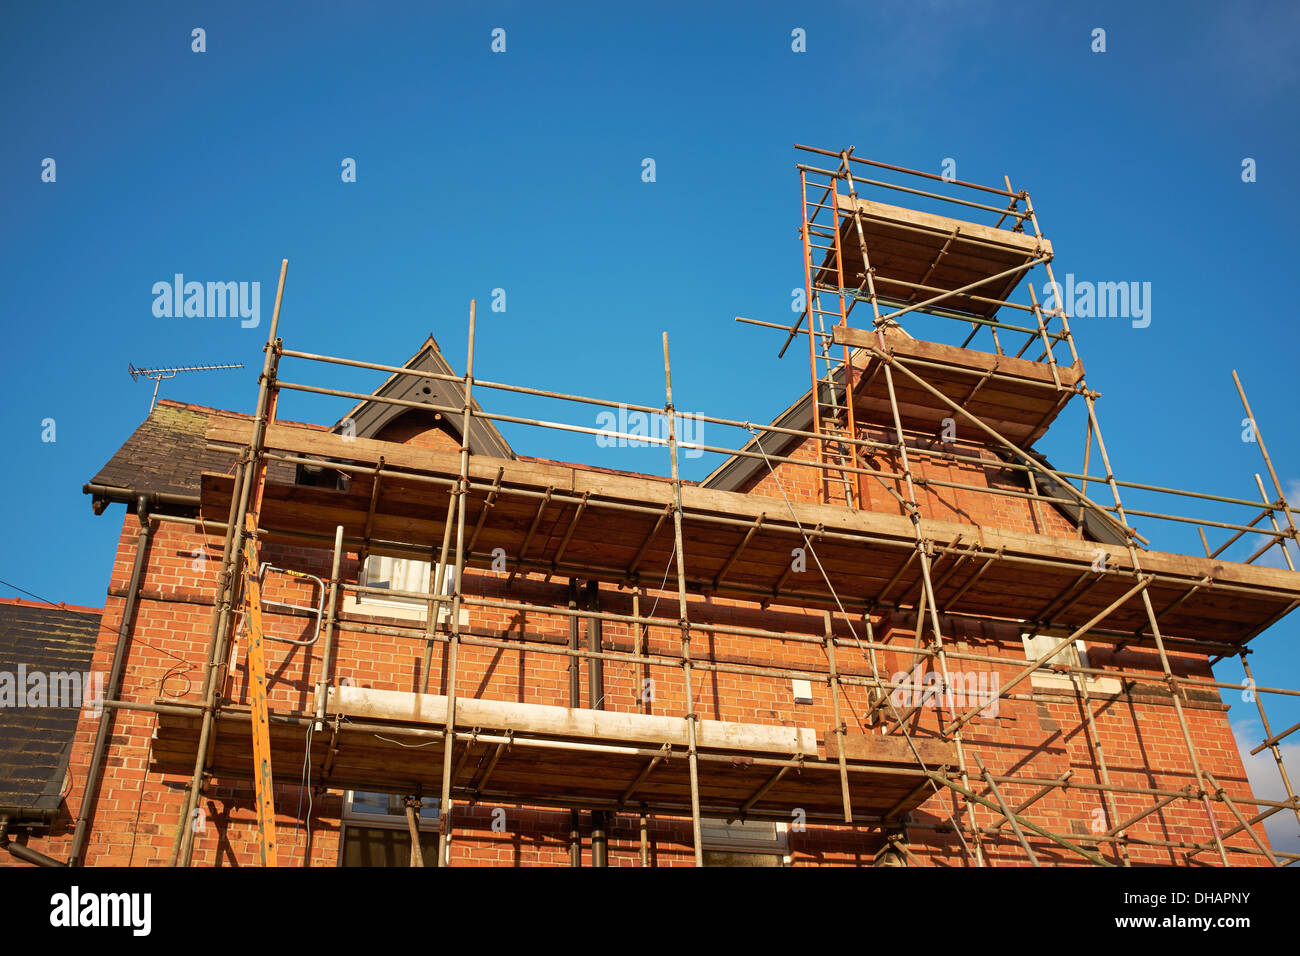 Scaffolding on the side of a house - Stock Image